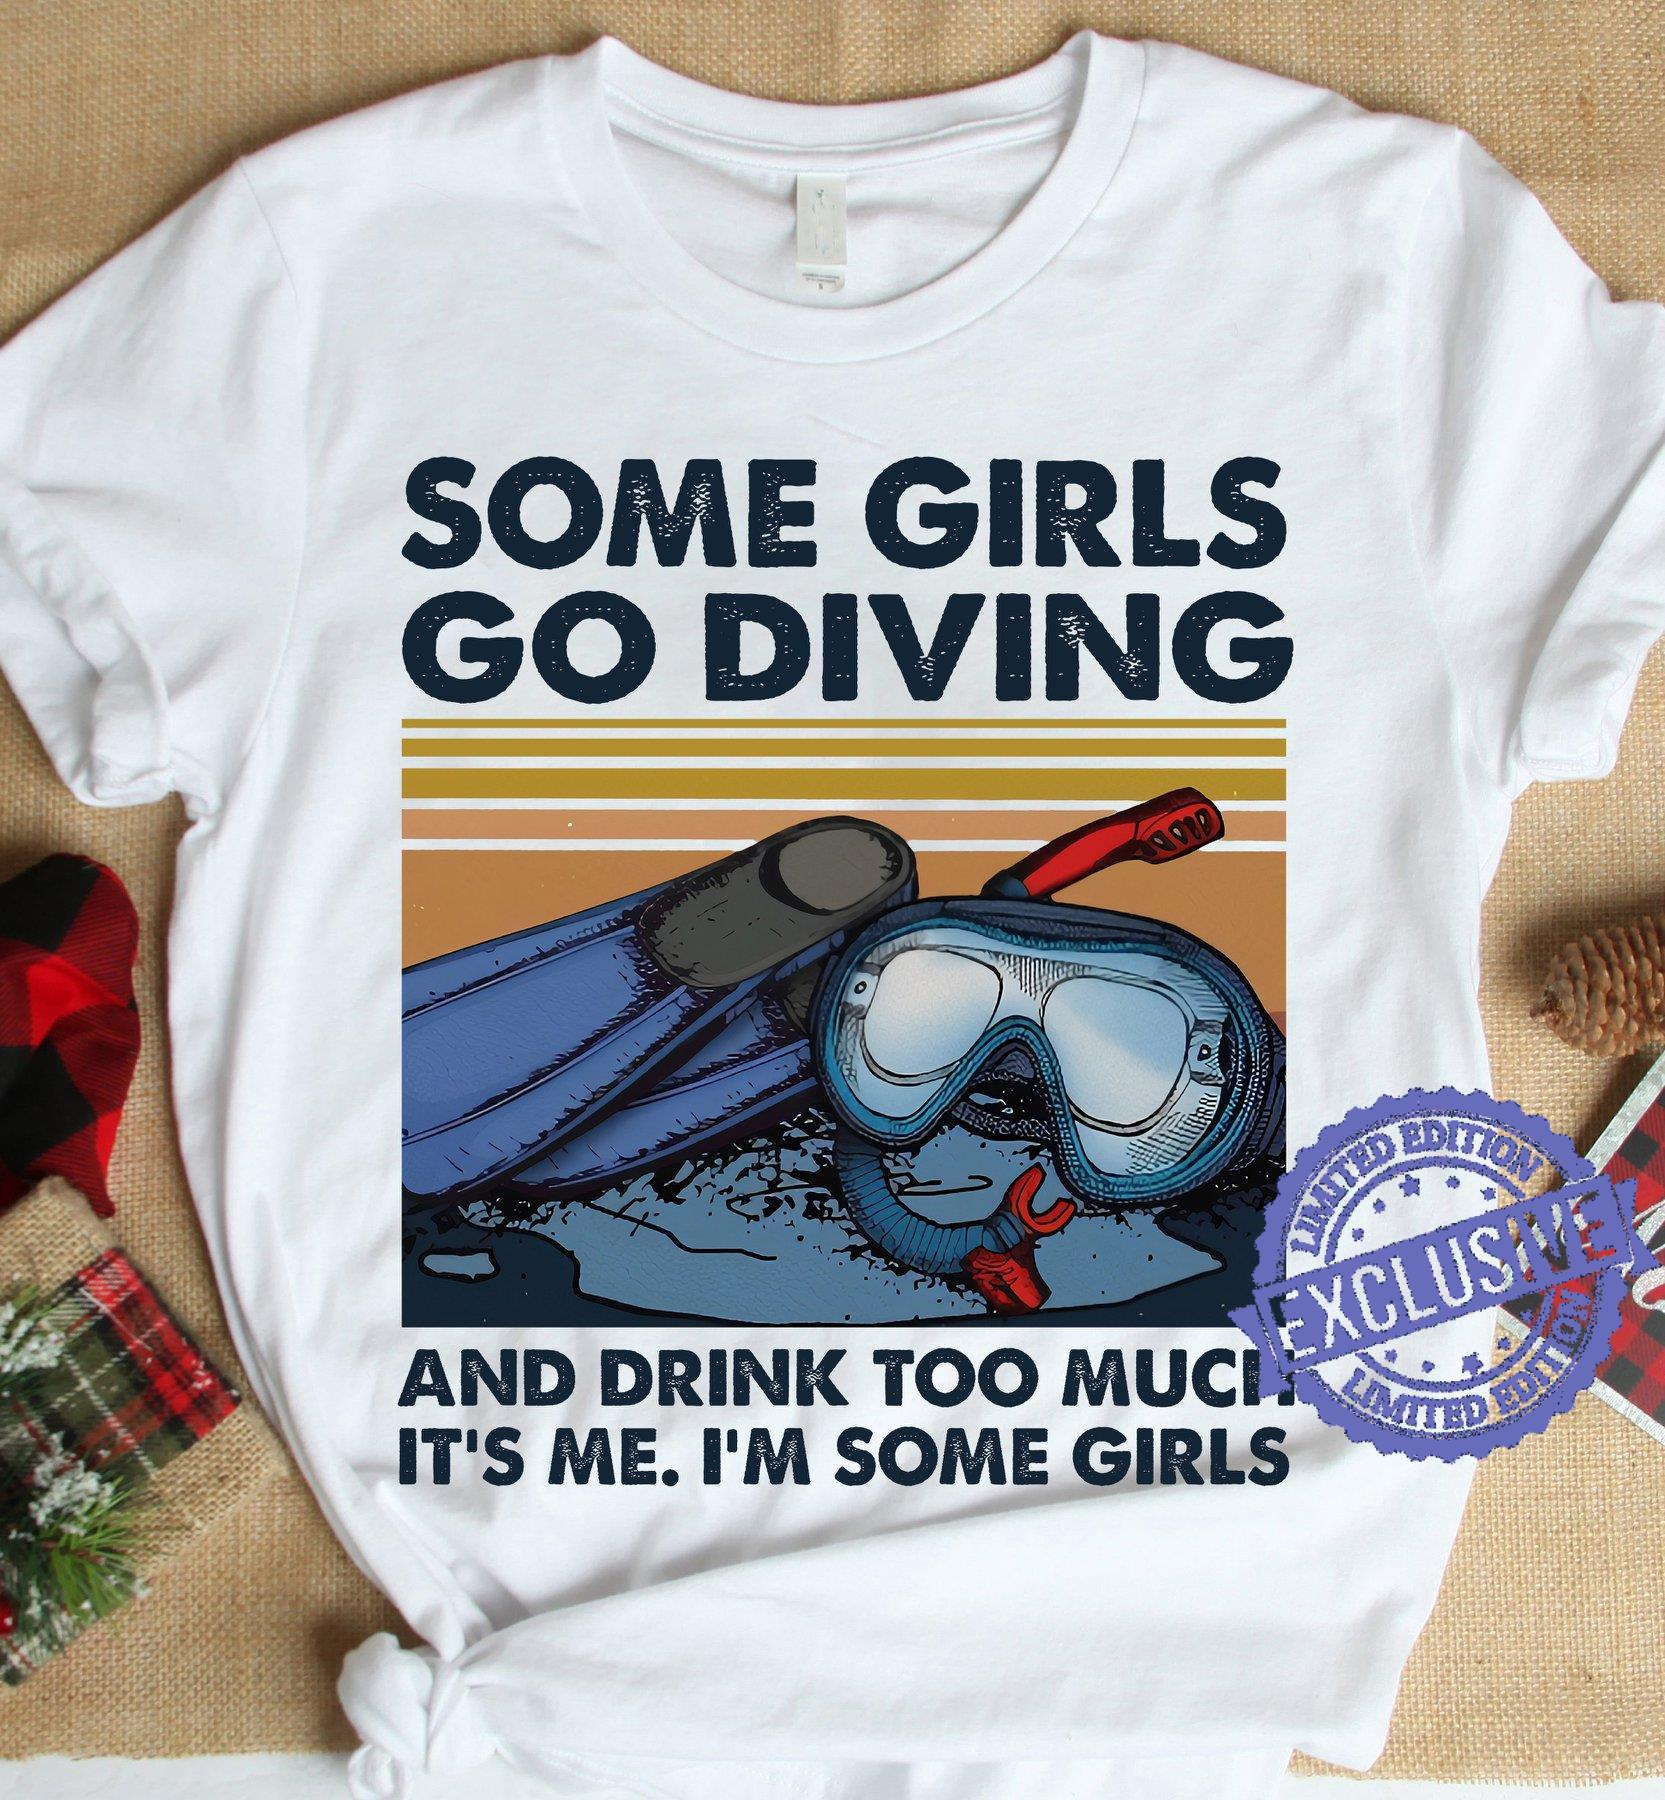 Some girls go diving and drink too much it's me i'm some girls shirt